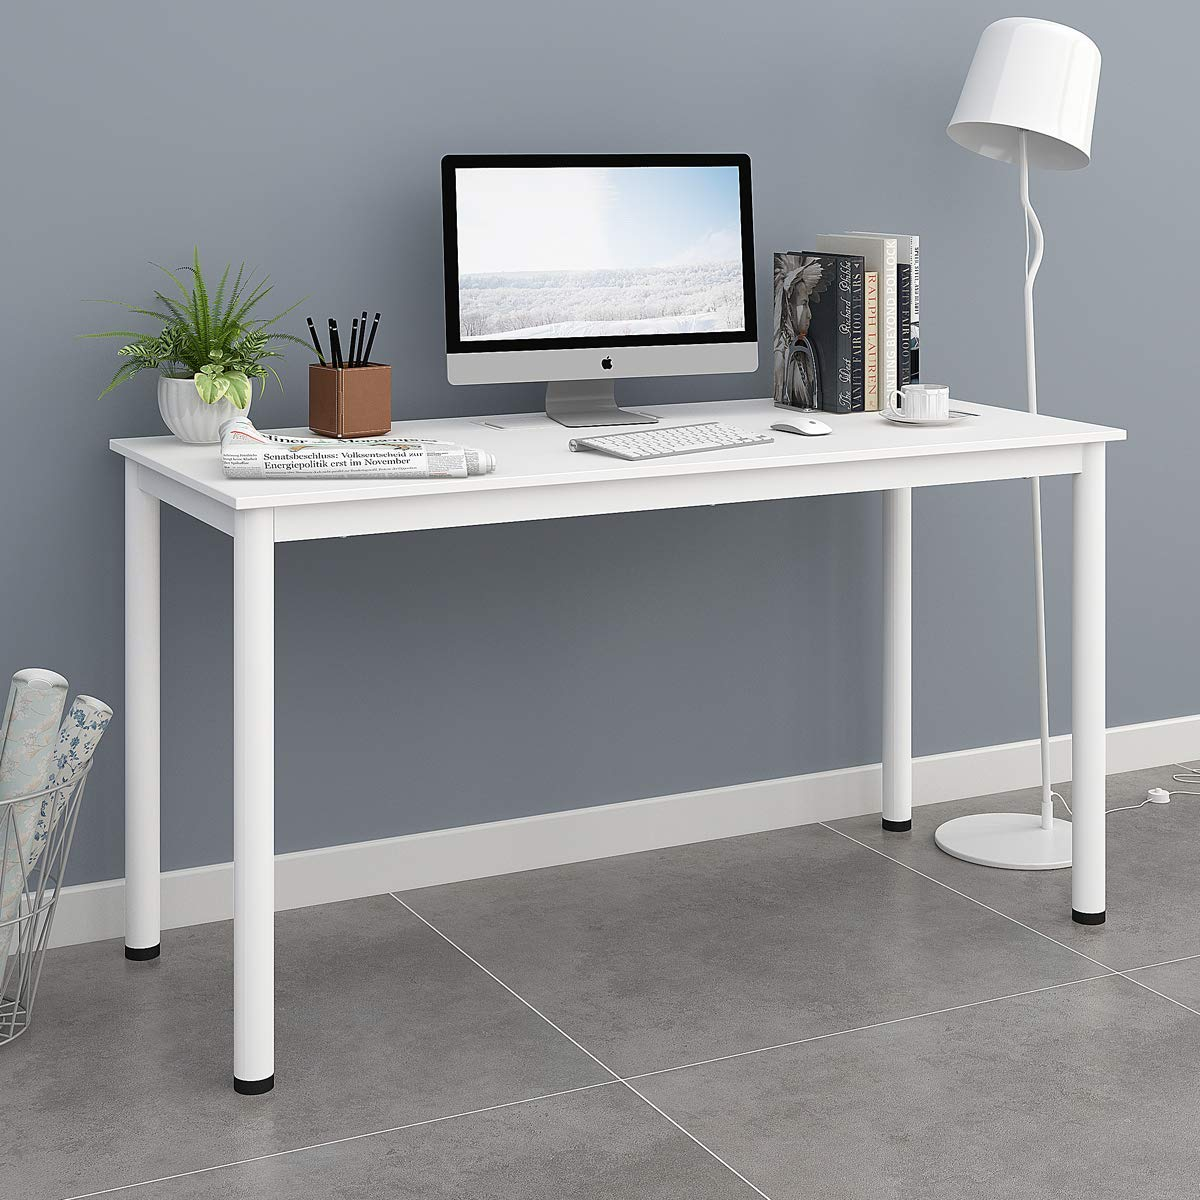 "DEVAISE Computer Desk 55"" Large Size, Home Office Desk with Cable Organizer / White"